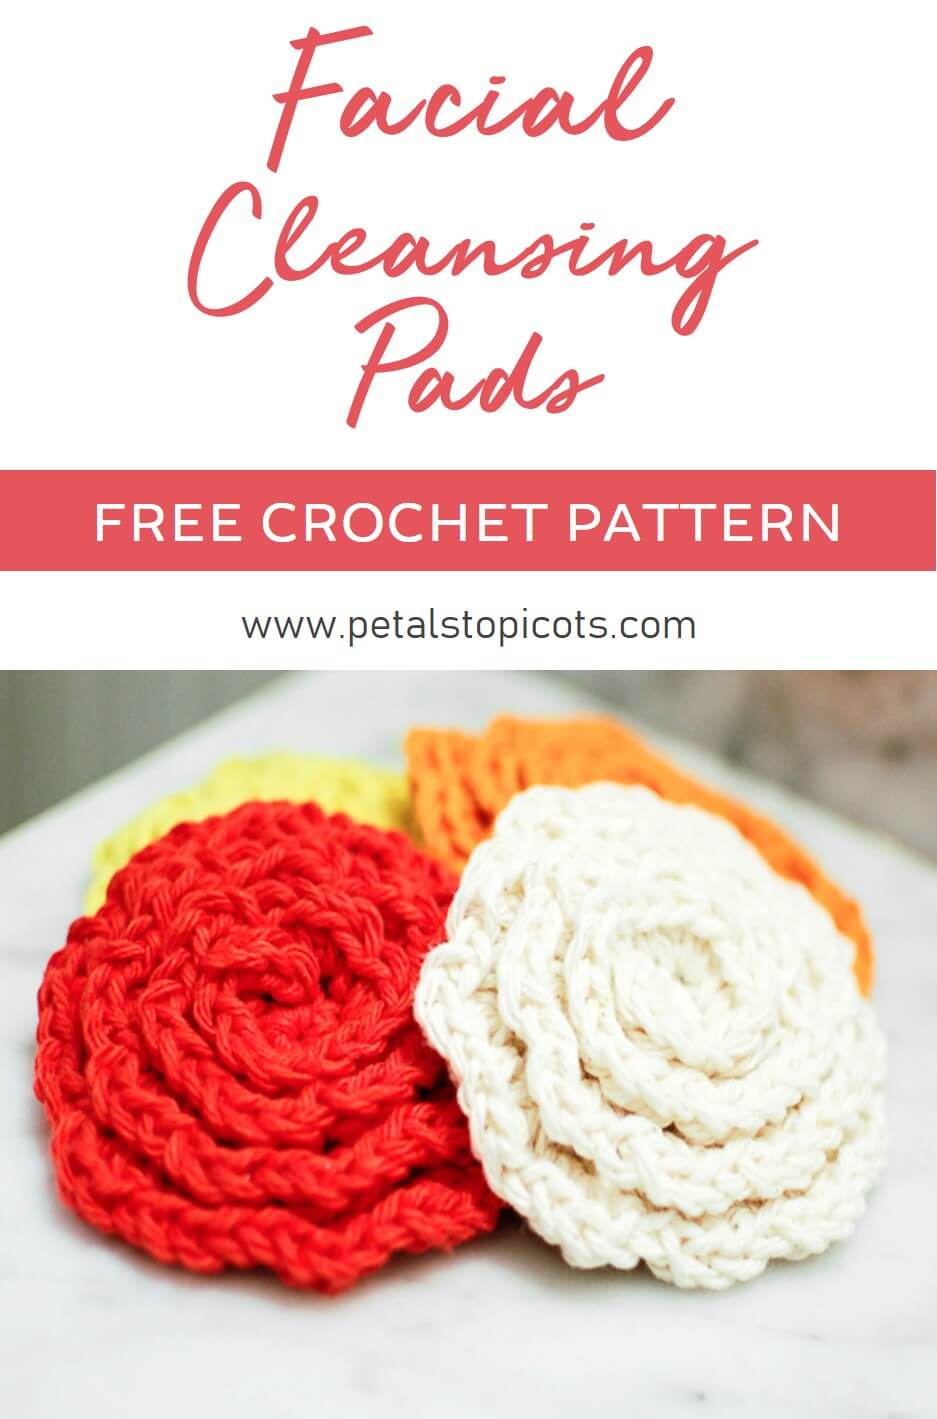 These crochet flower face cleansing pads add some fun to your beauty routine. They are attractive enough to be displayed while being soft and absorbent enough to cleanse. They also make for a great gift when paired with a scented soap and lotions. #petalstopicots